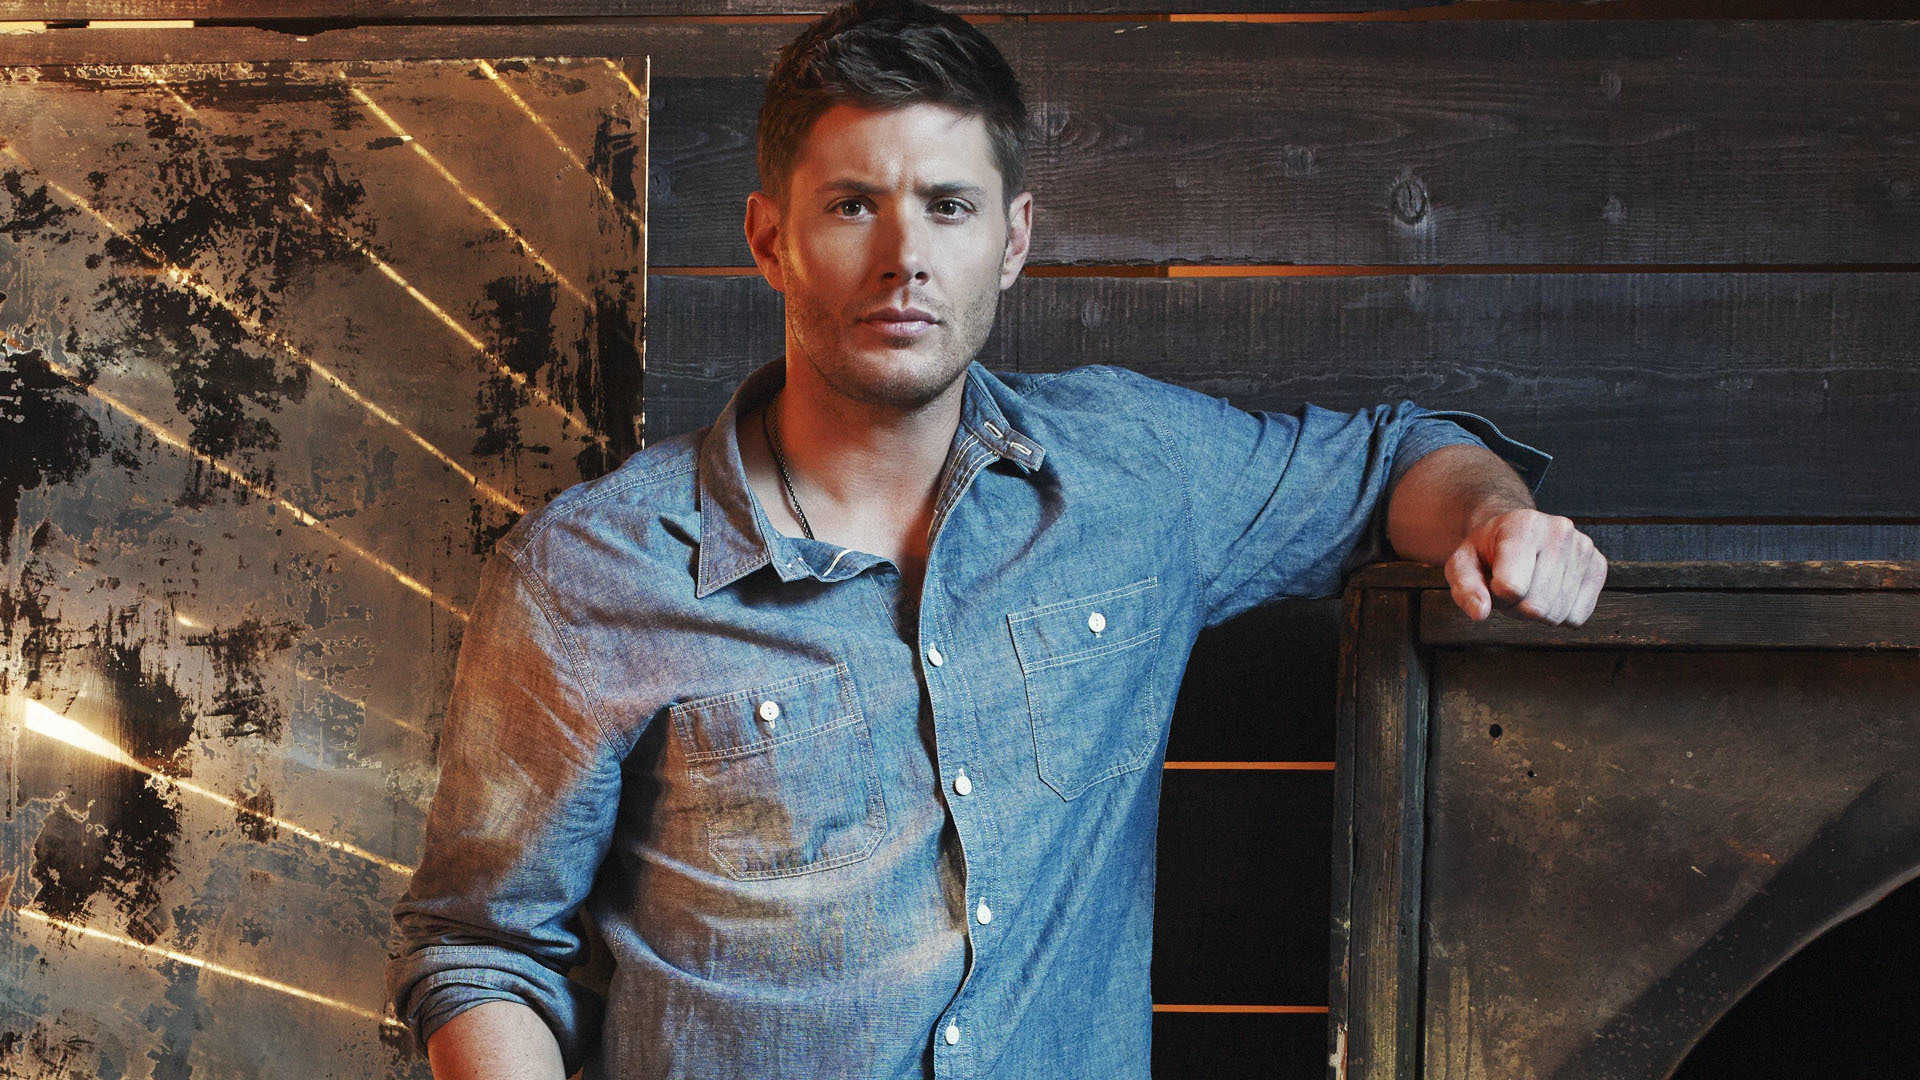 [47+] Jensen Ackles Wallpaper HD on WallpaperSafari